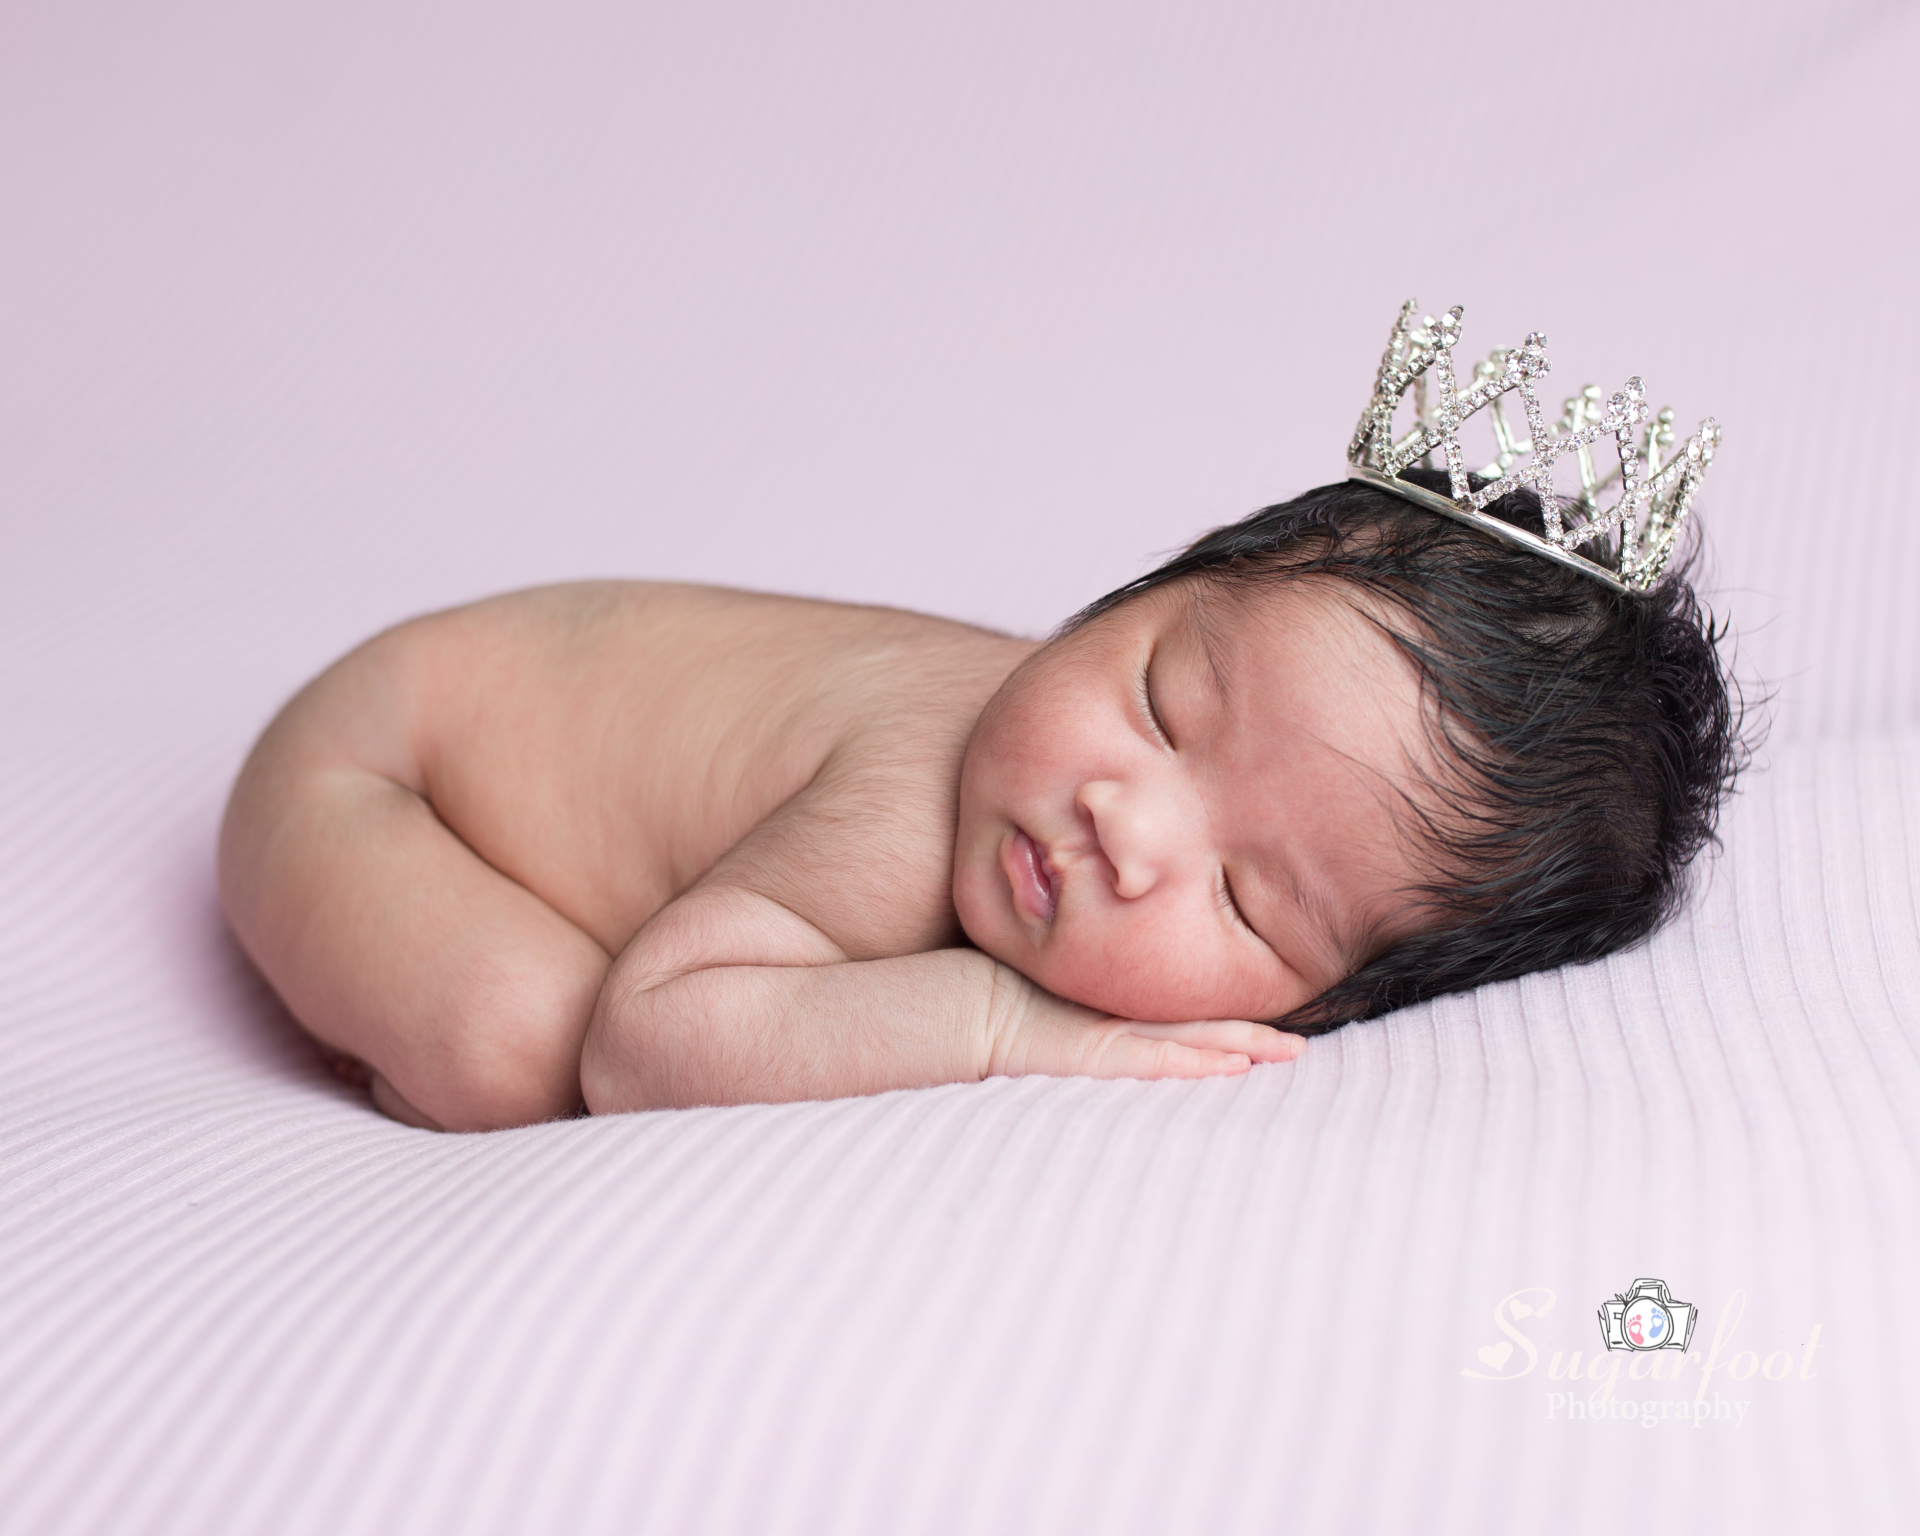 stl_newborn_baby_photographer_maternity_photographer